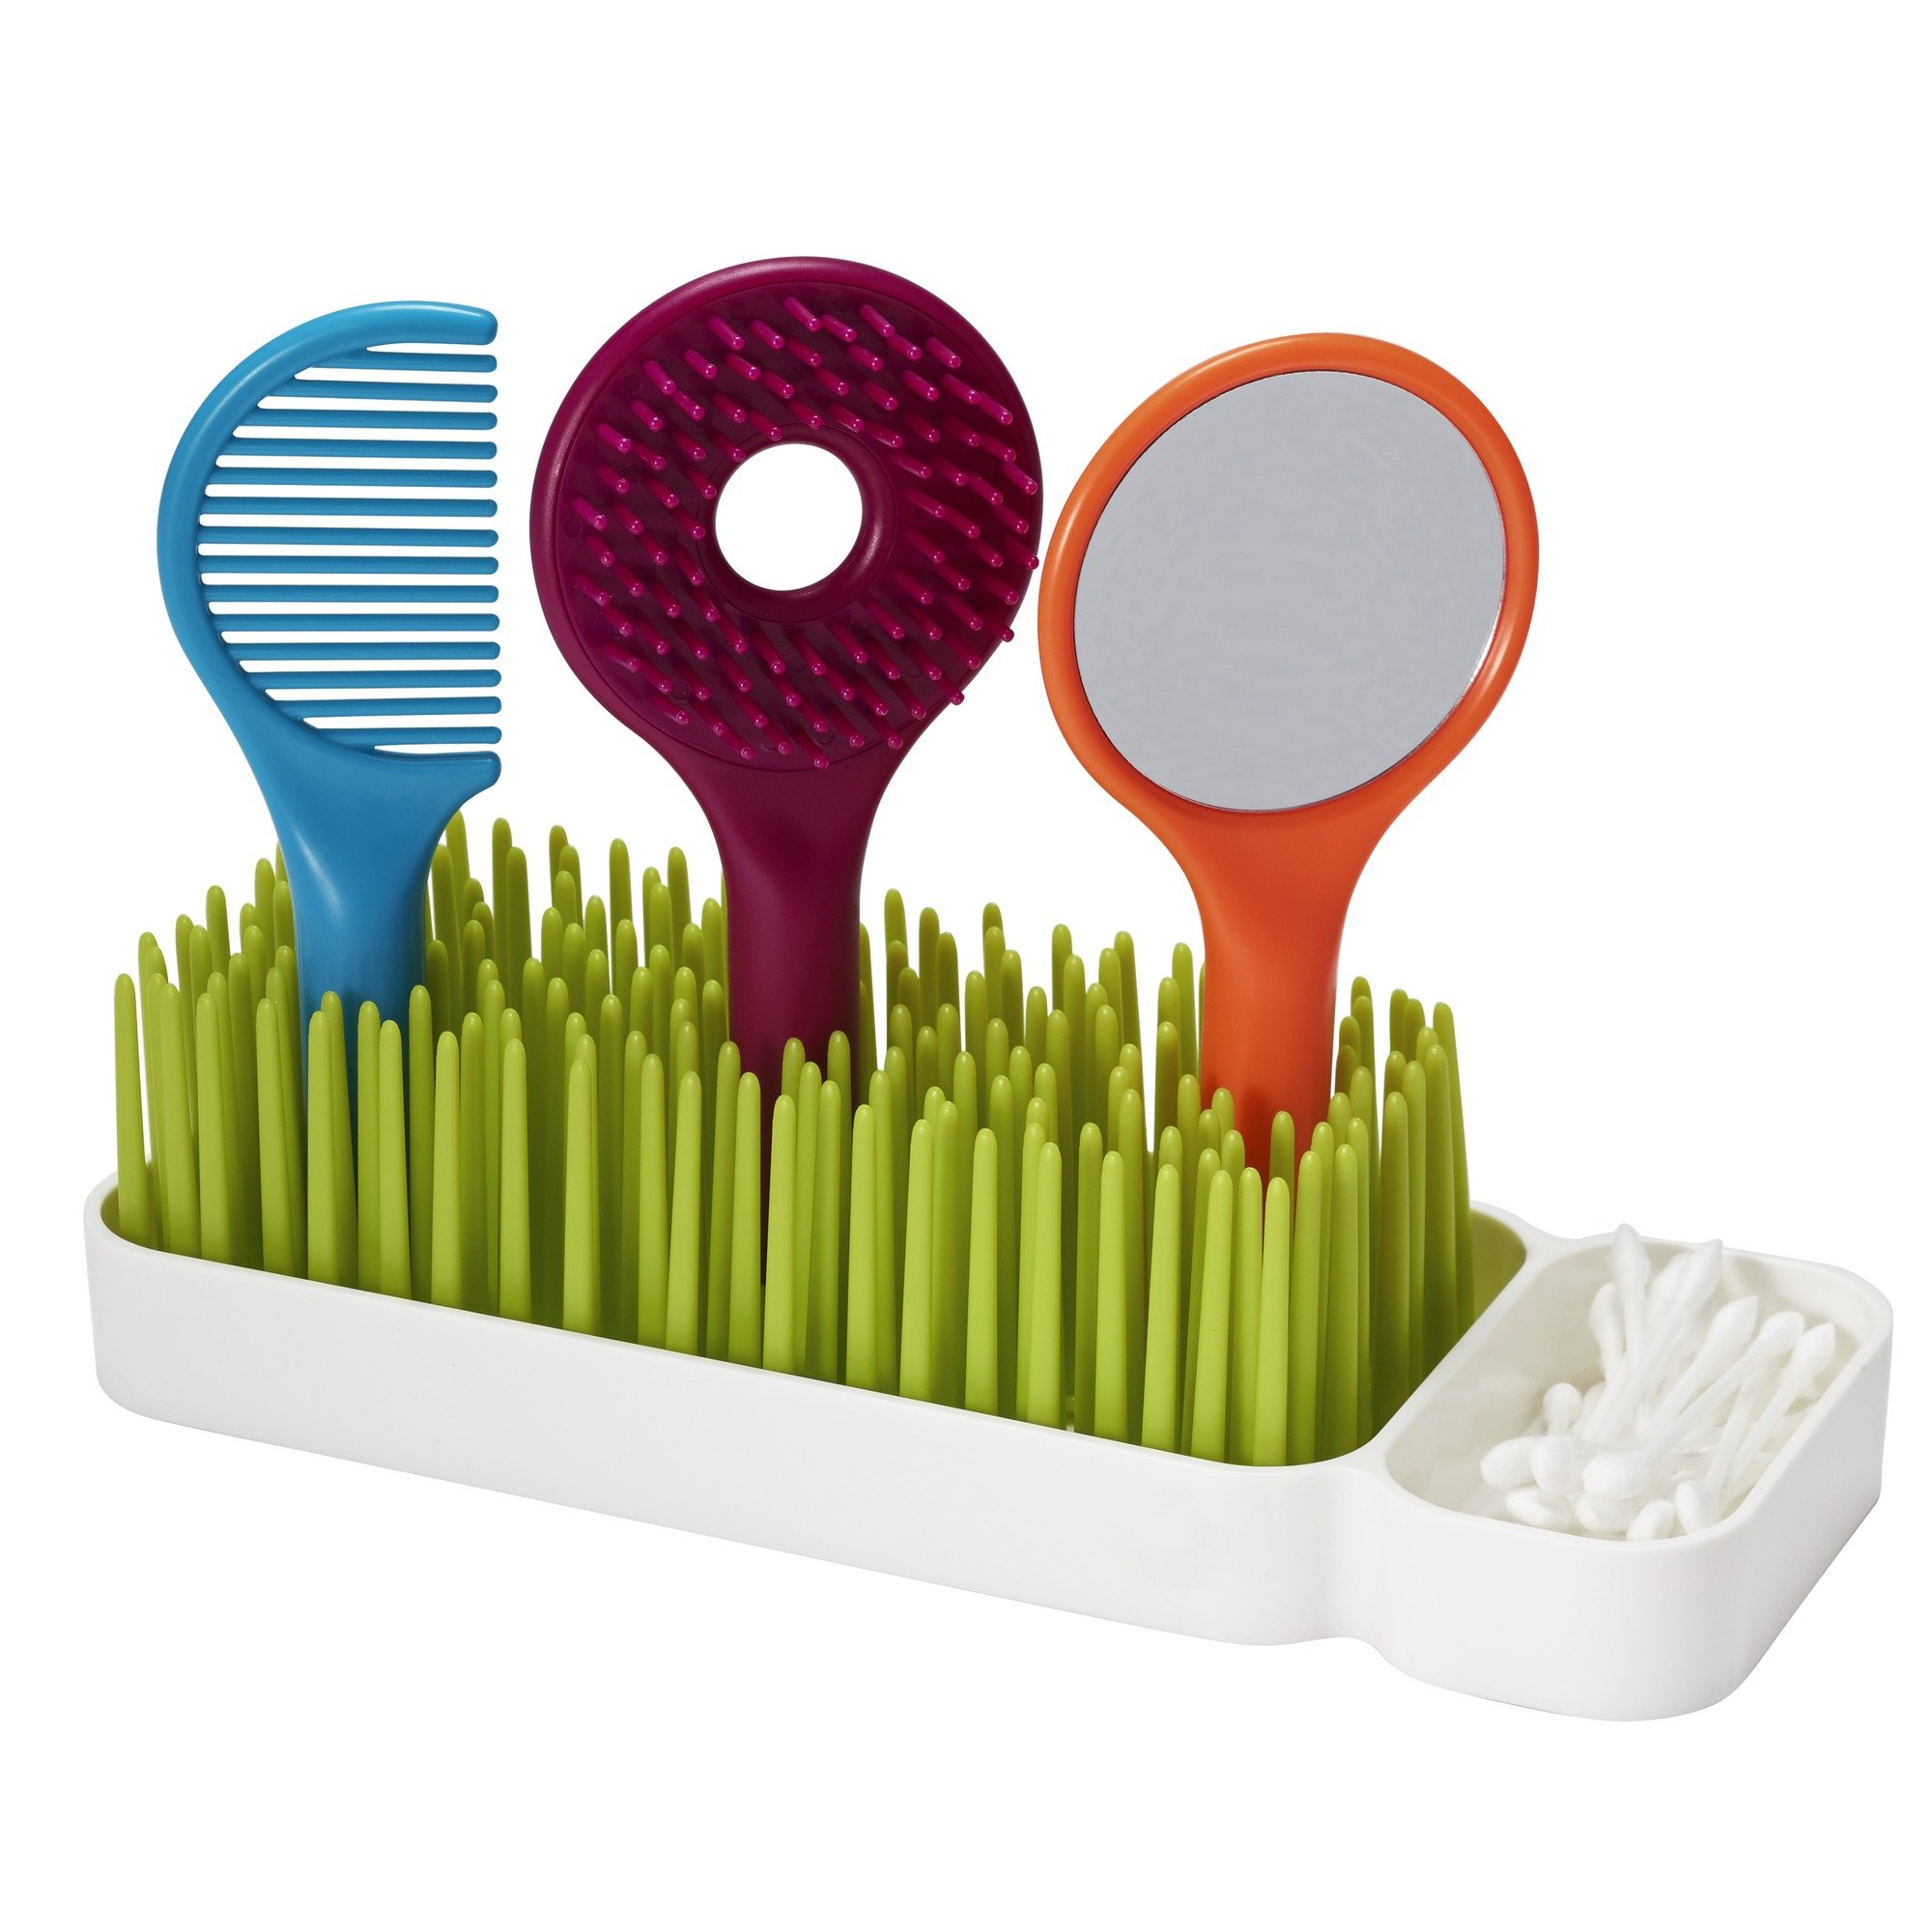 Boon SPIFF Toddler Grooming Kit, Green, White, Blue, Orange, Red by Boon